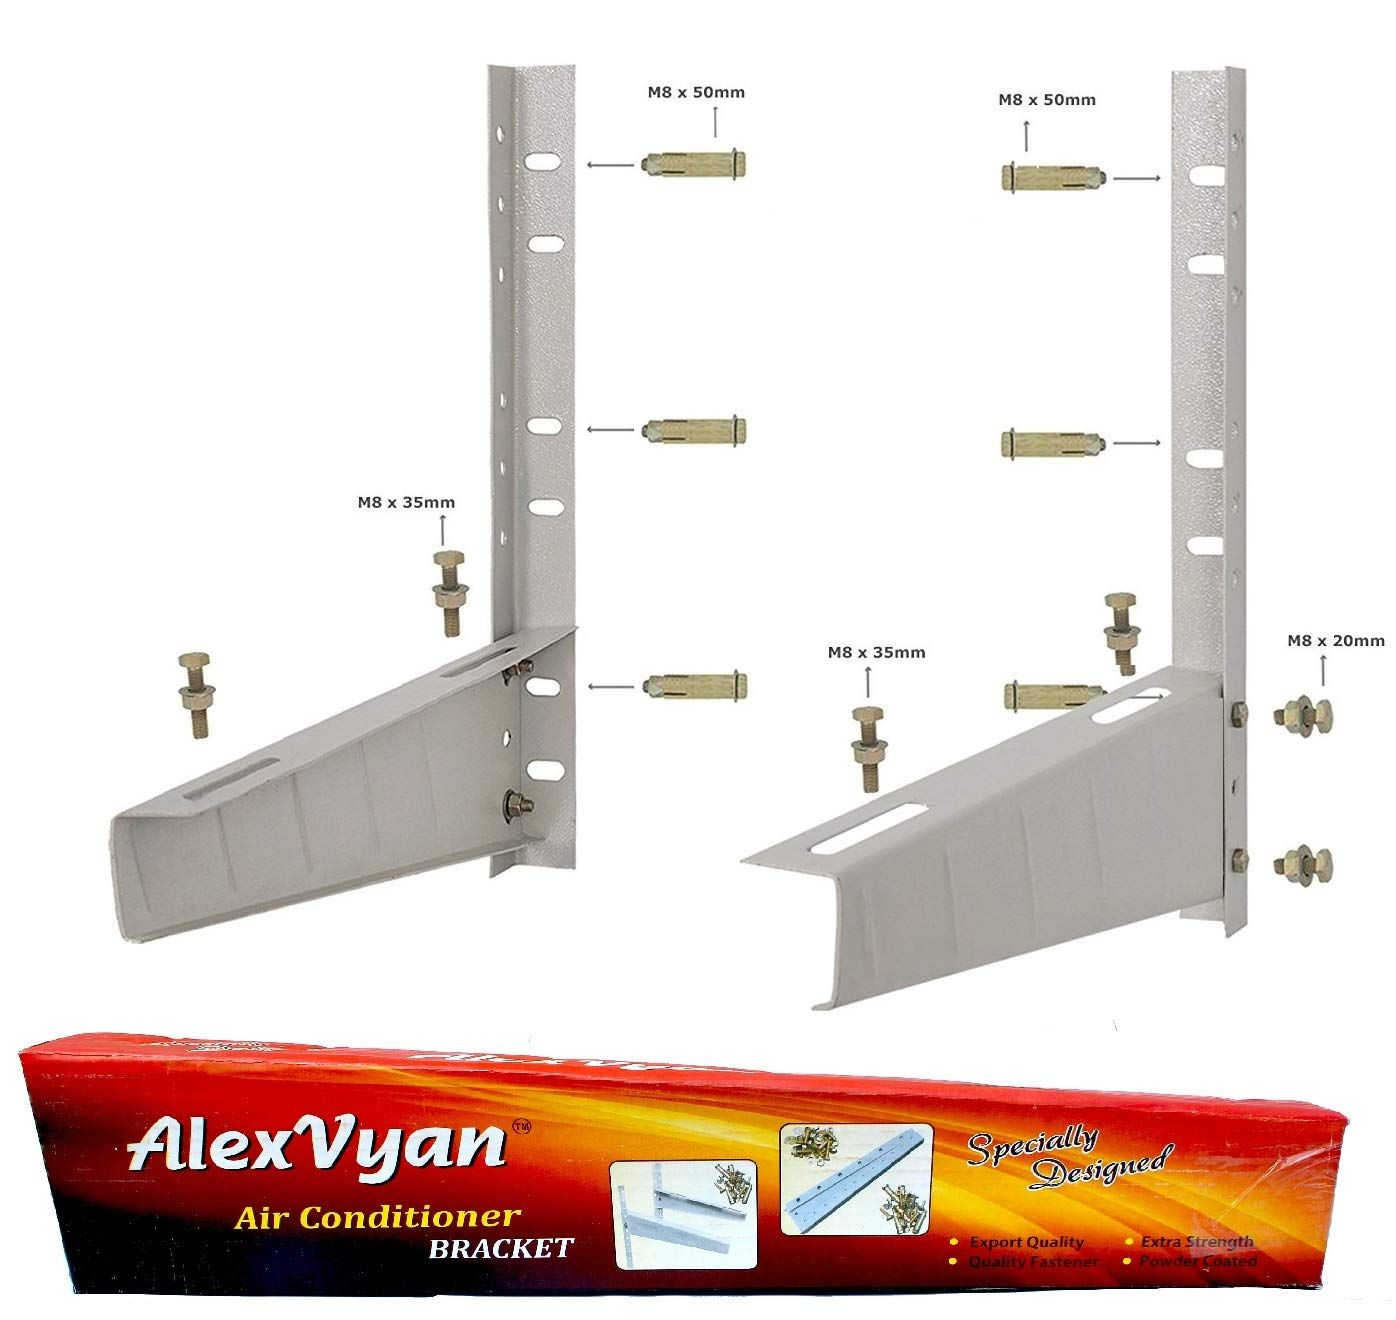 Alexvyan Special Coated Super Quality Split Ac Air Conditioner Outdoor Unit Wall Mounting Bracket Stand Mount For 1 Ton 1 1 Ton 1 2 Ton 1 5 Ton 2 Ton For Al Large Appliances Air Conditioner Bracket Split Ac